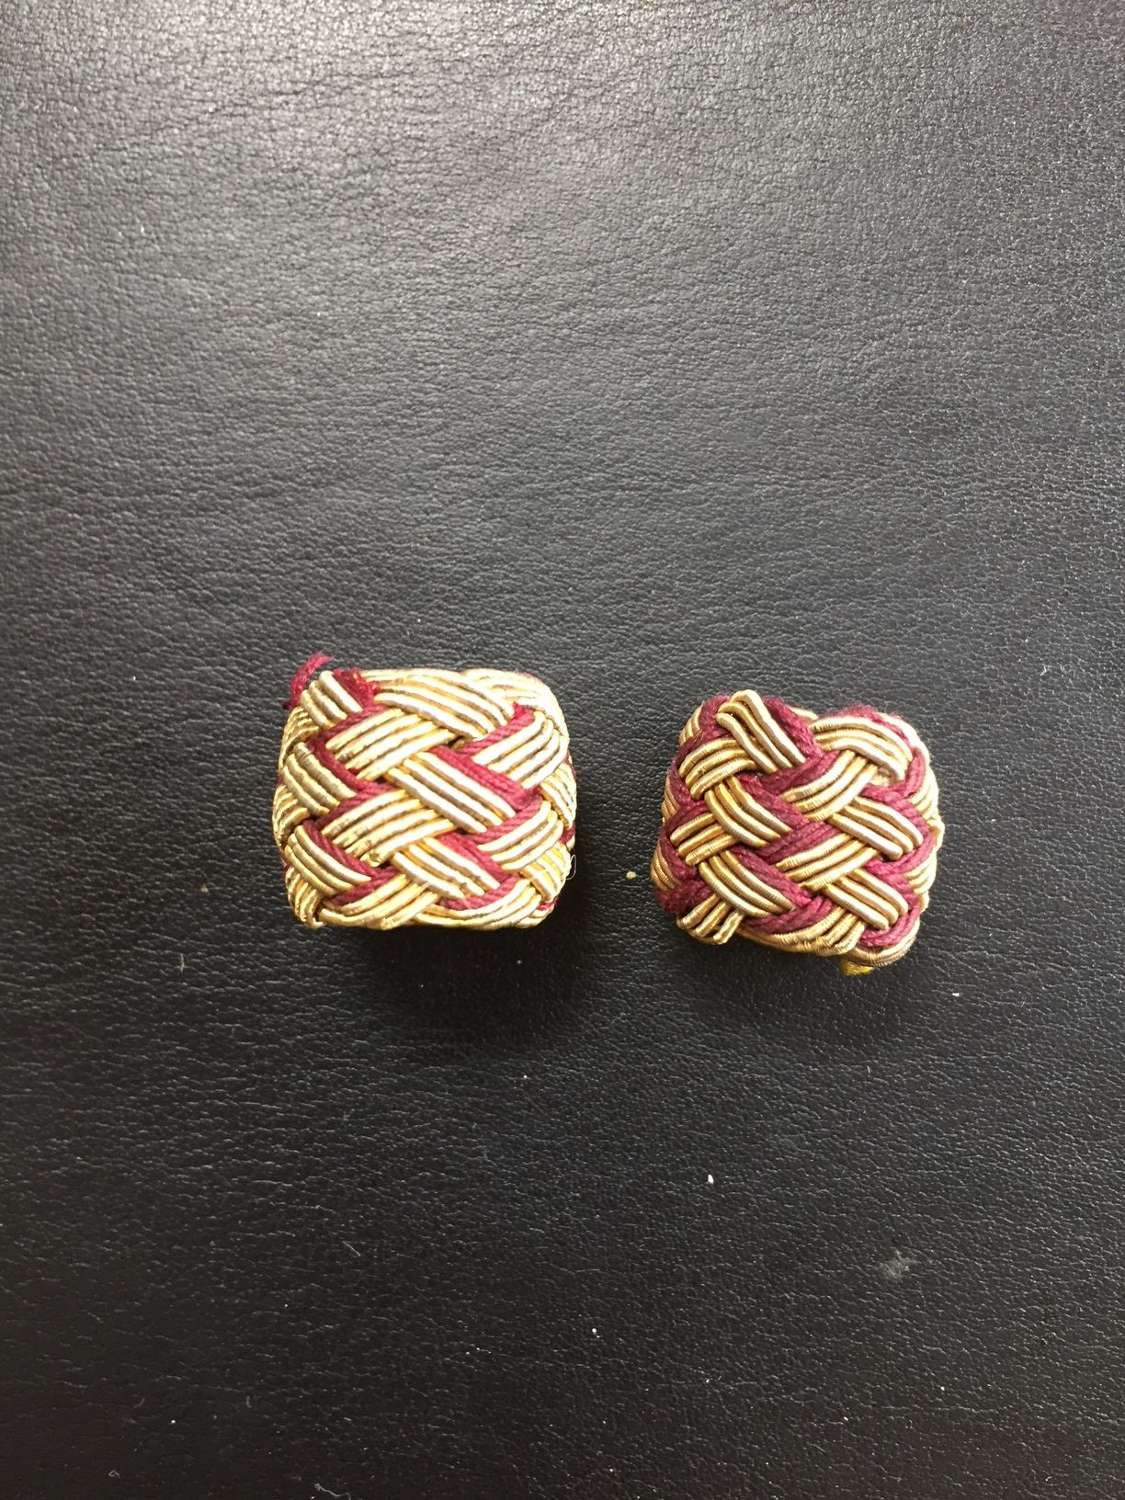 A pair of spare sliders for a full dress sword knot